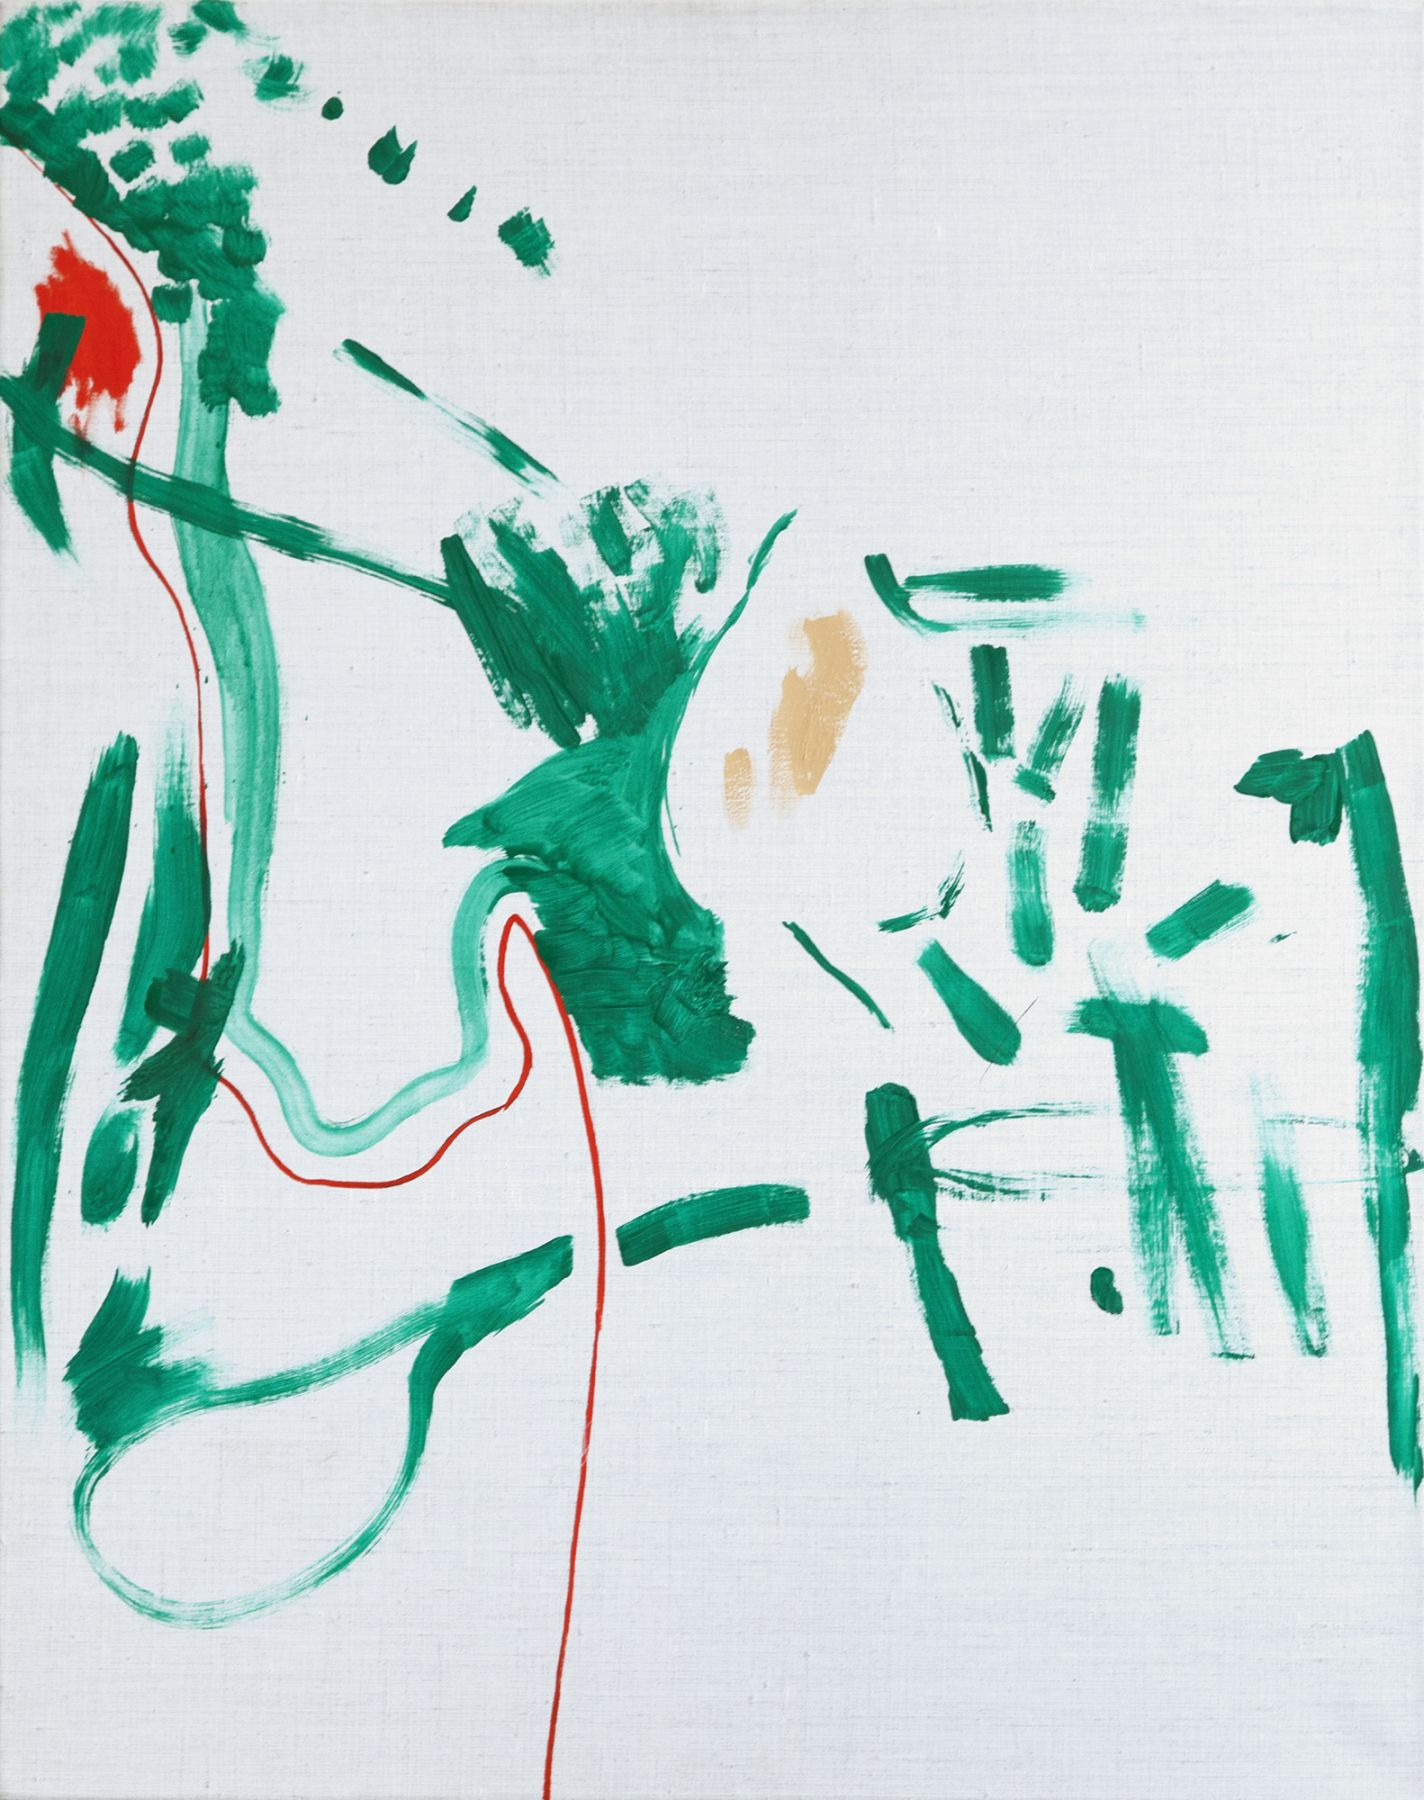 Michael Krebber Untitled, 1991 Oil on canvas 36 1/4 x 28 3/4 inches (92 x 73 cm)